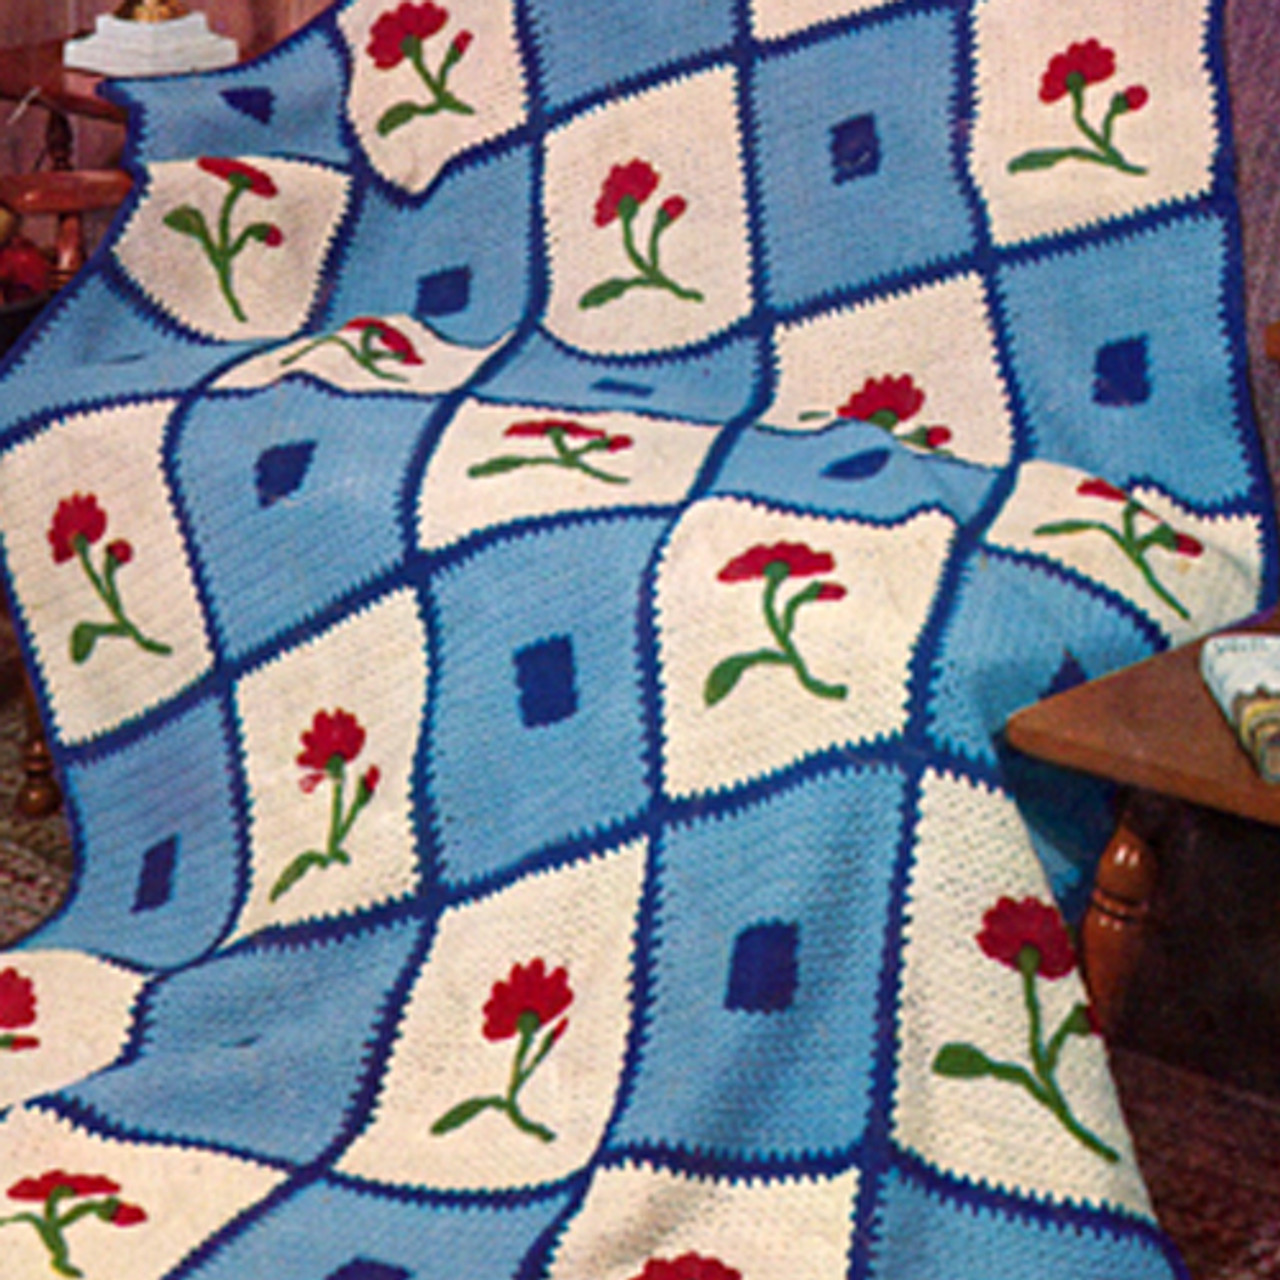 Crochet Block Afghan Pattern with Flower Embroidery